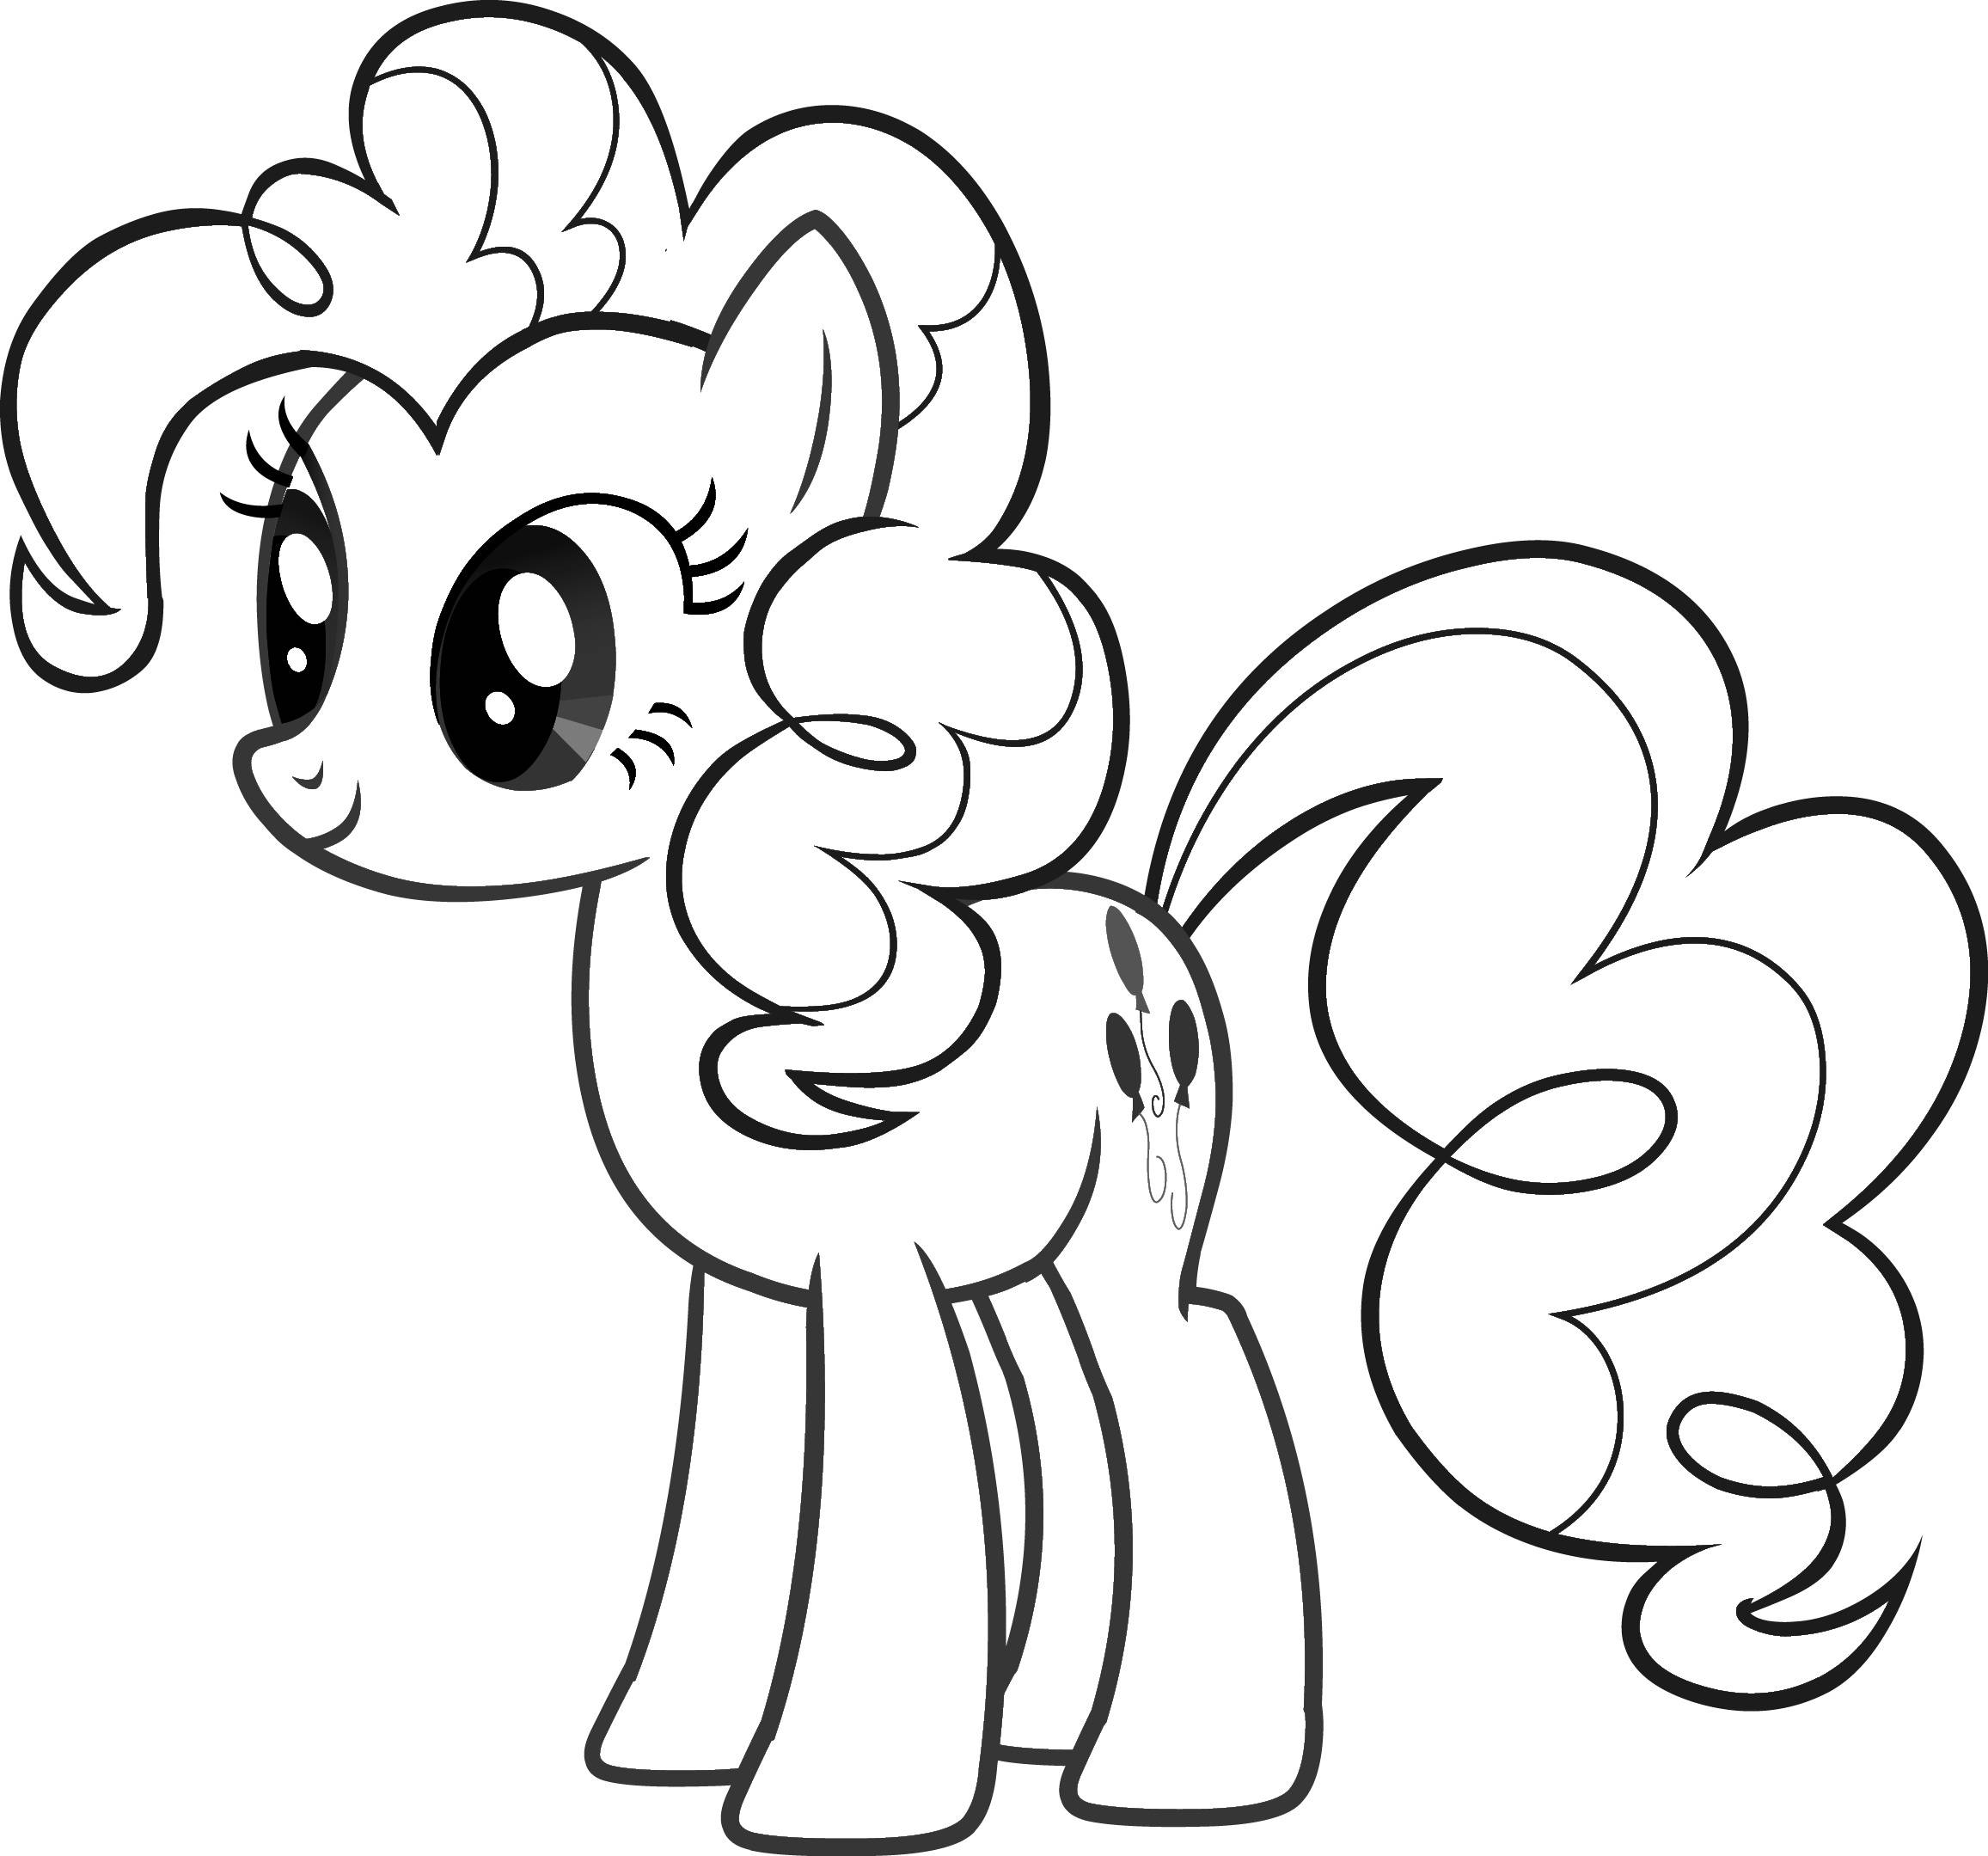 coloring pages ponies - photo#4